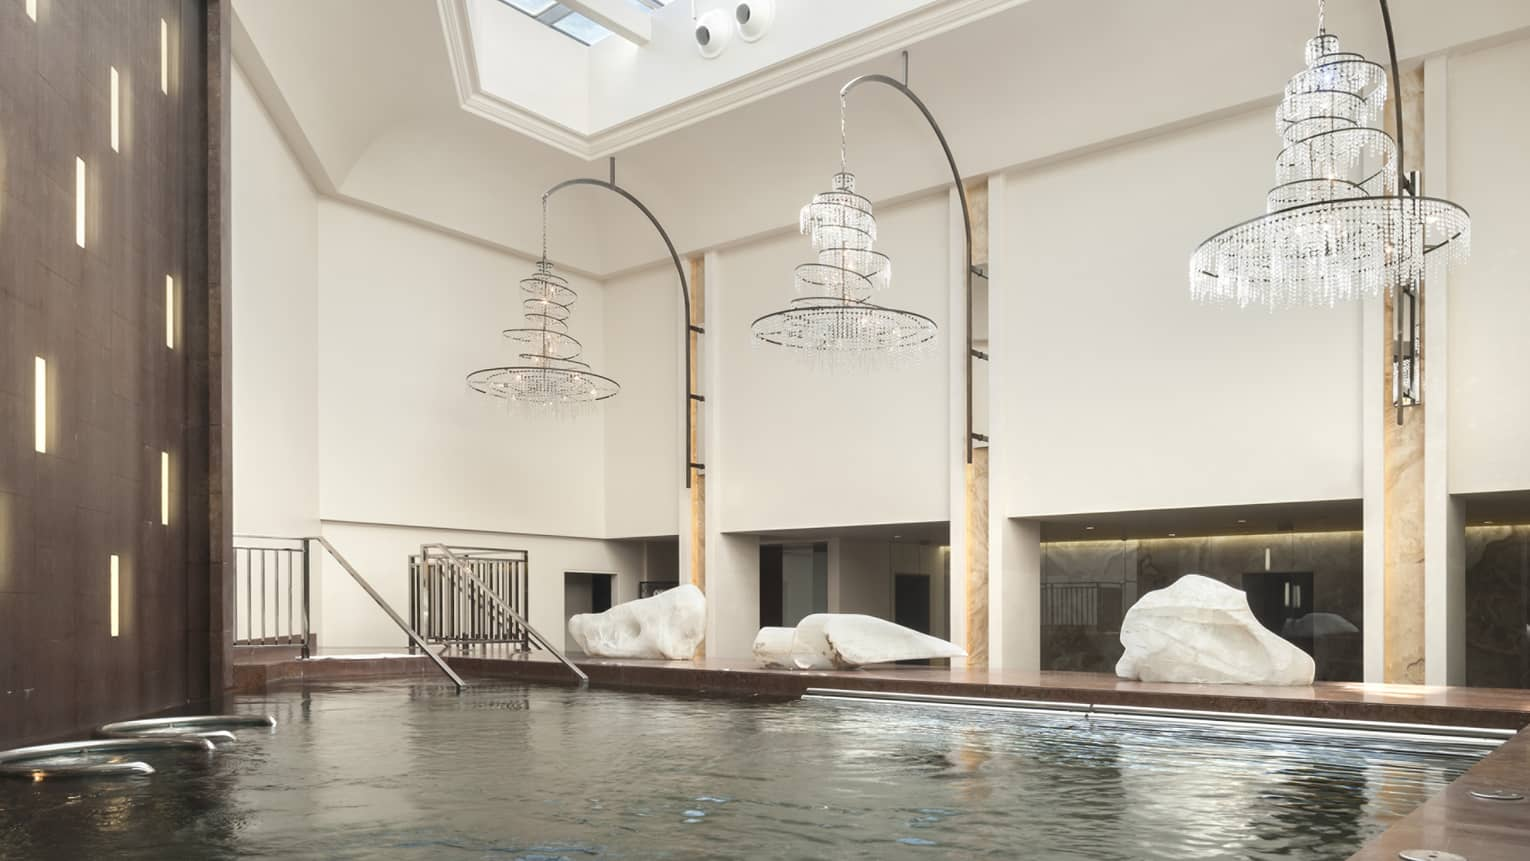 Spiral crystal chandeliers hang over pool in Luceo Spa's Aqua Zone, skylight in high ceiling